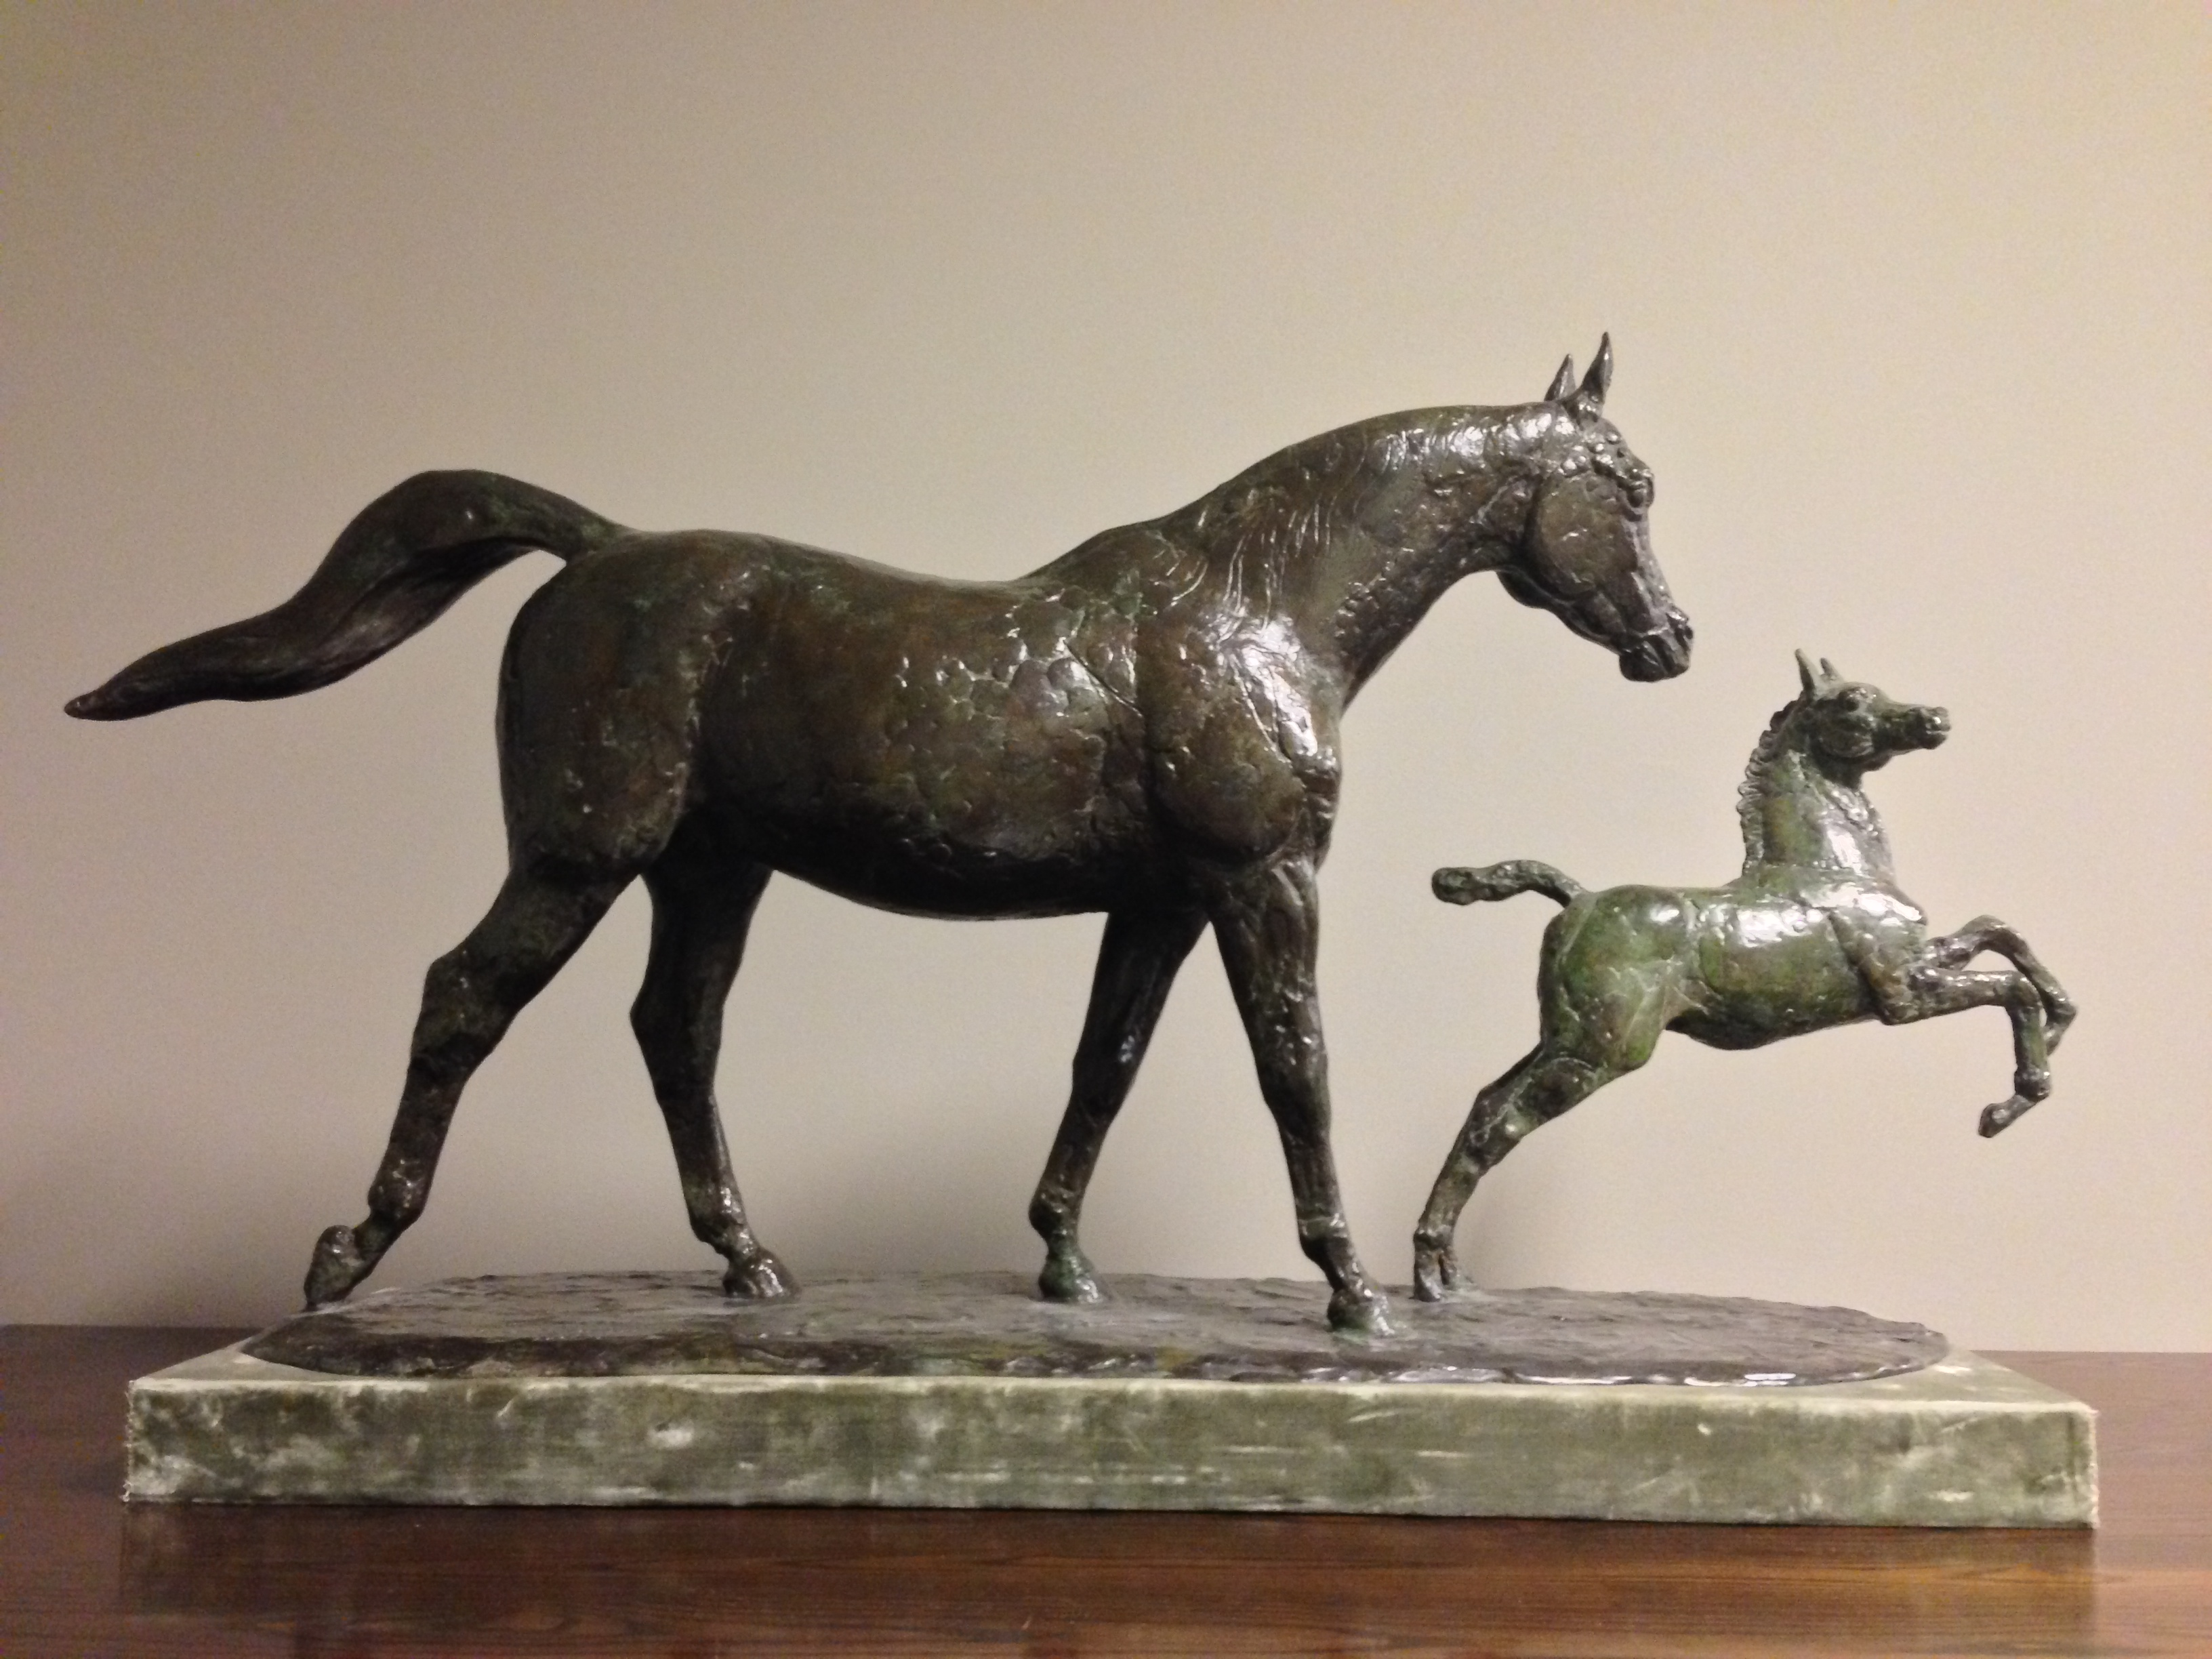 1993.4: Mare and Foal by Herbert Haseltine (1877-1962), Bronze, 1948, Gift: Paul Mellon